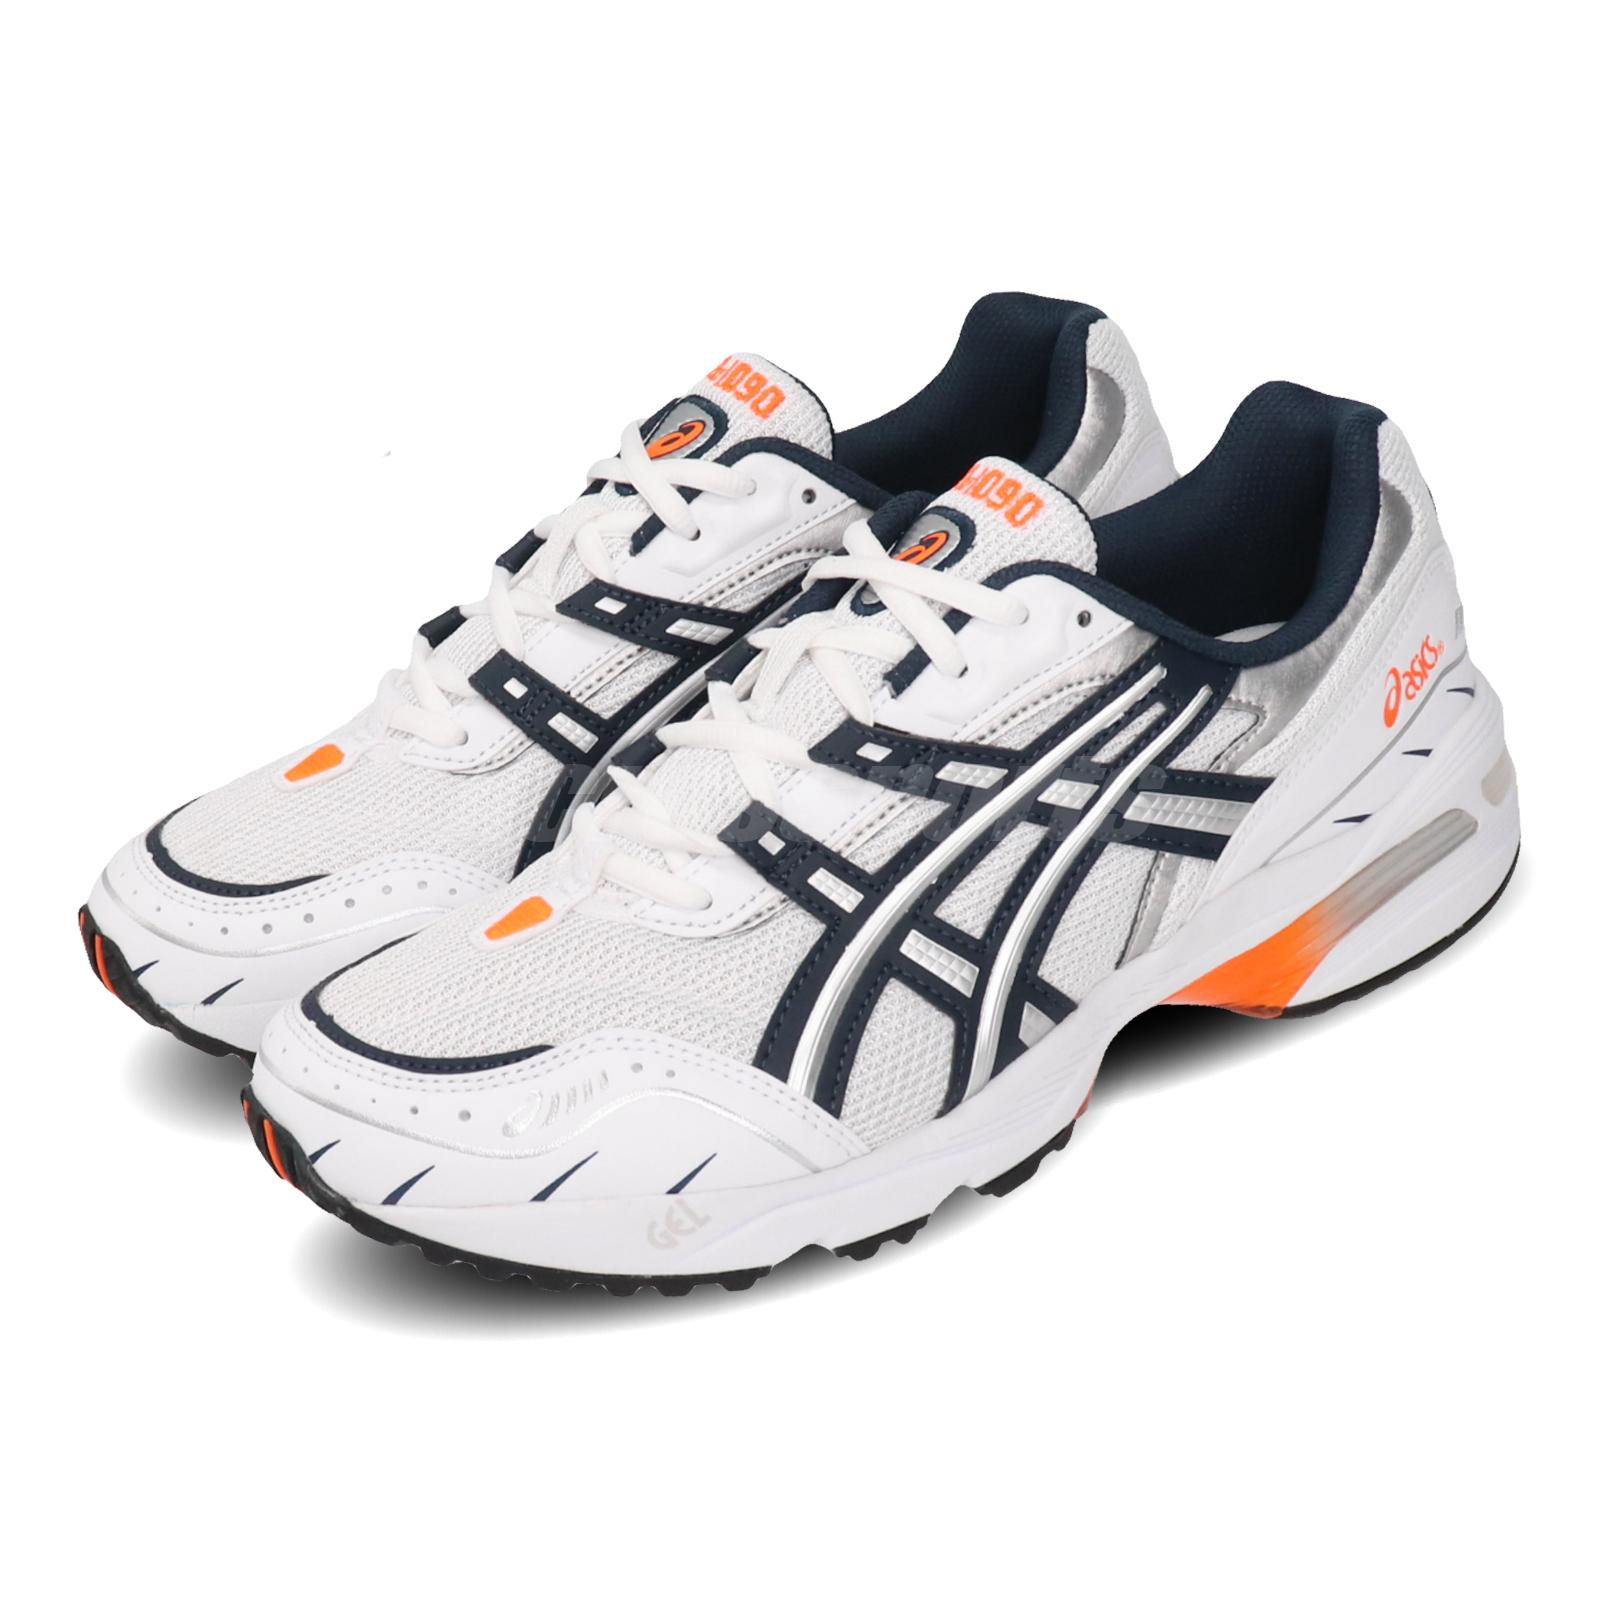 Details about Asics Gel-1090 White Navy Orange Mens Womens Retro Running  Shoes 1021A275-100